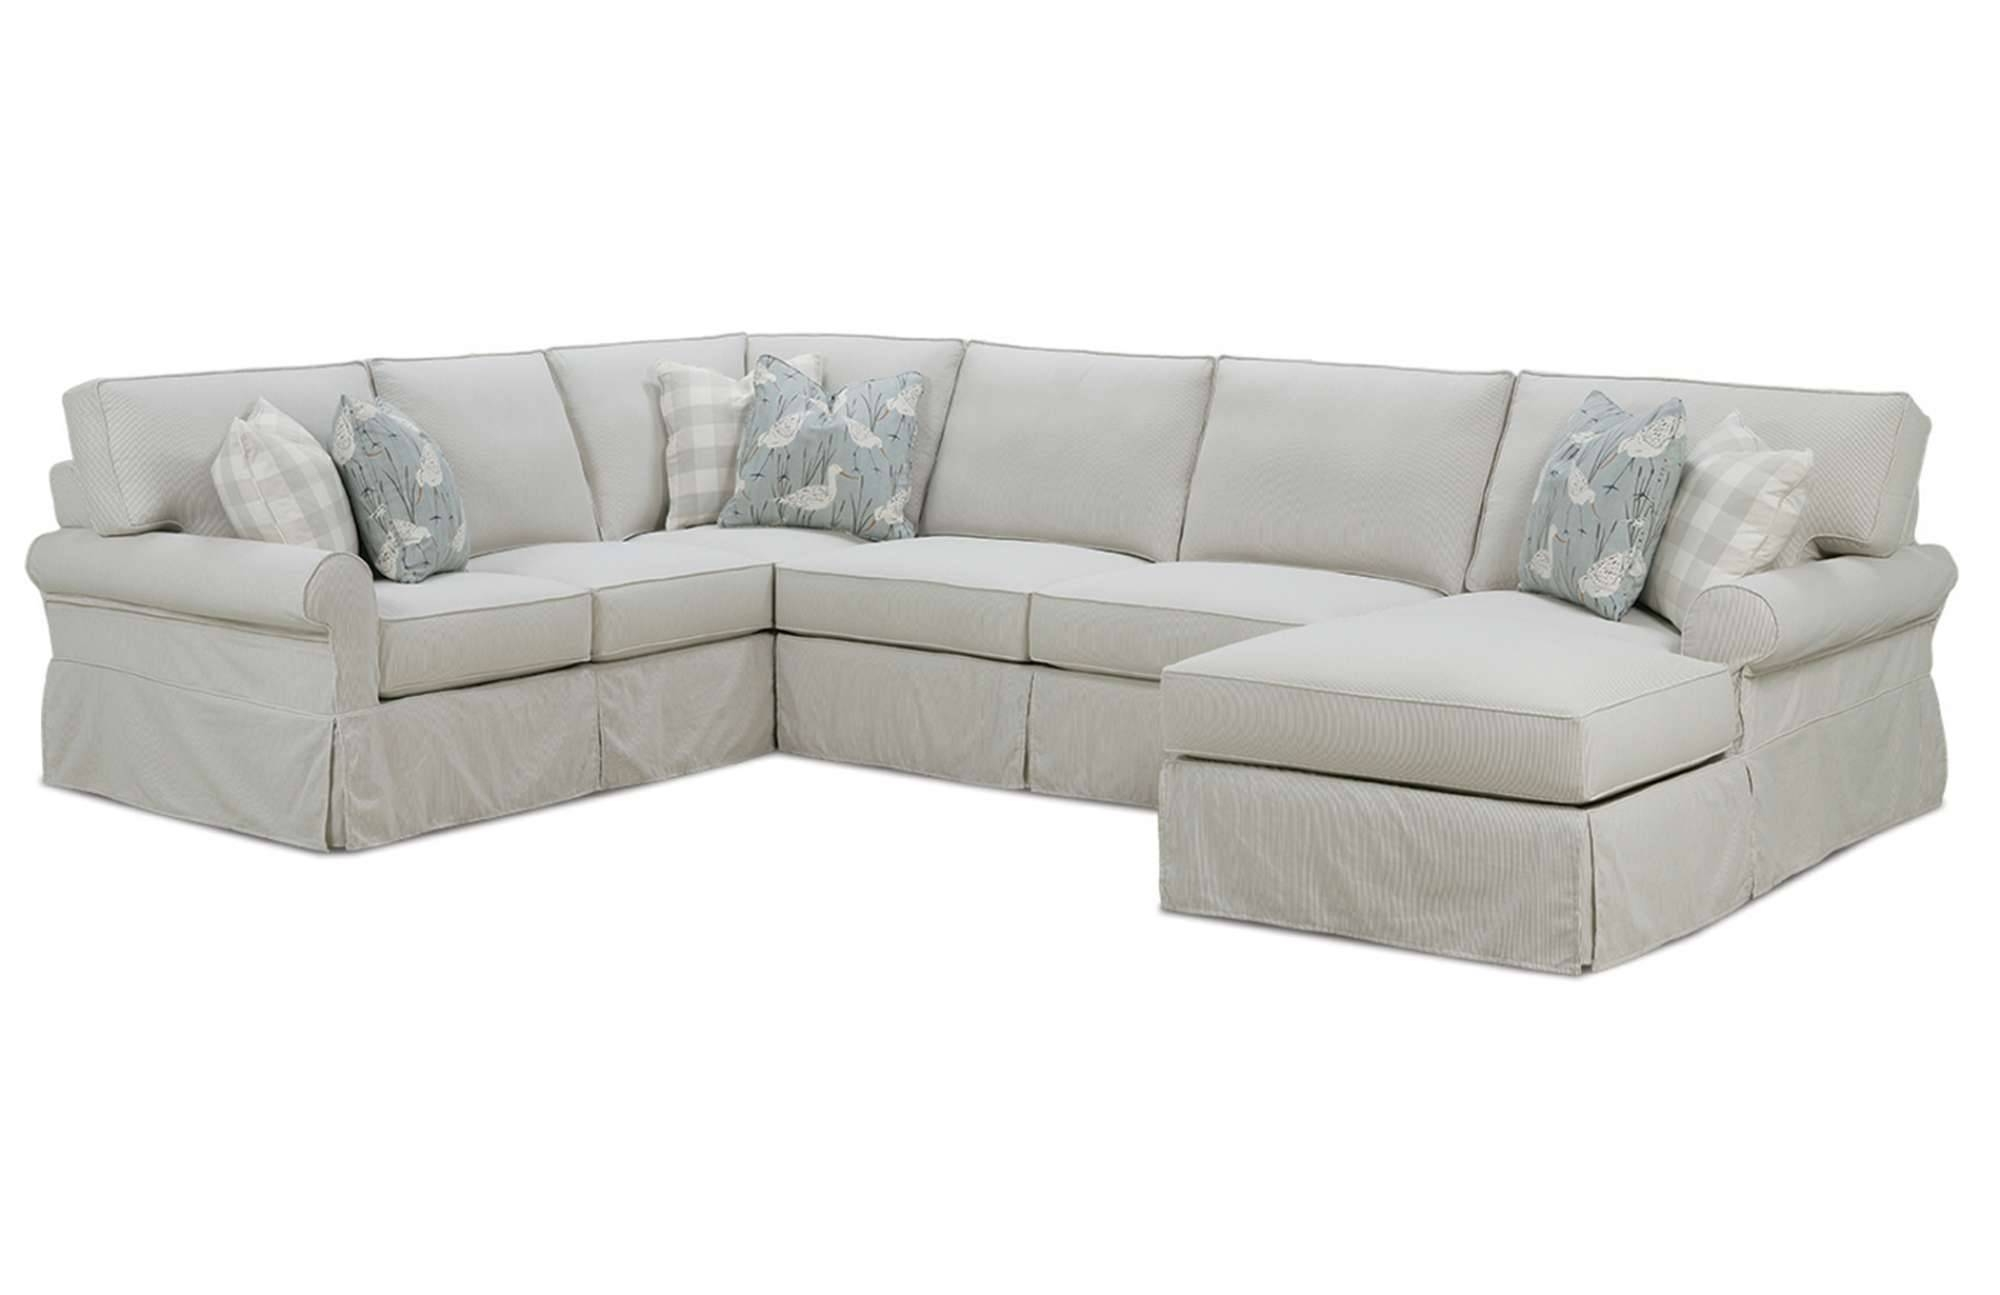 The Most Popular Slipcover For Sectional Sofa With Chaise 67 For with Mitchell Gold Clifton Sectional Sofas (Image 14 of 15)